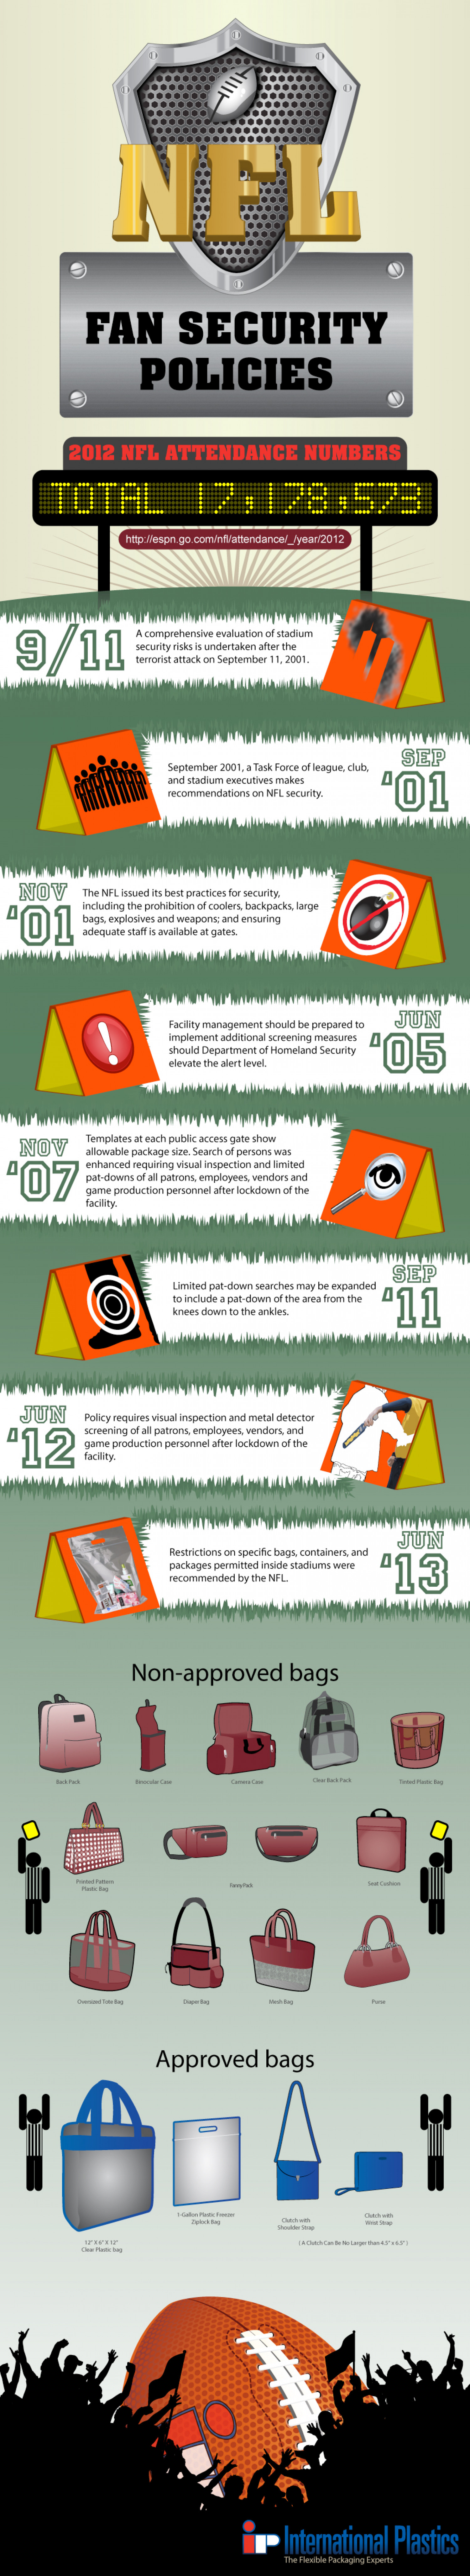 NFL Clear Bag  Security Policies Infographic